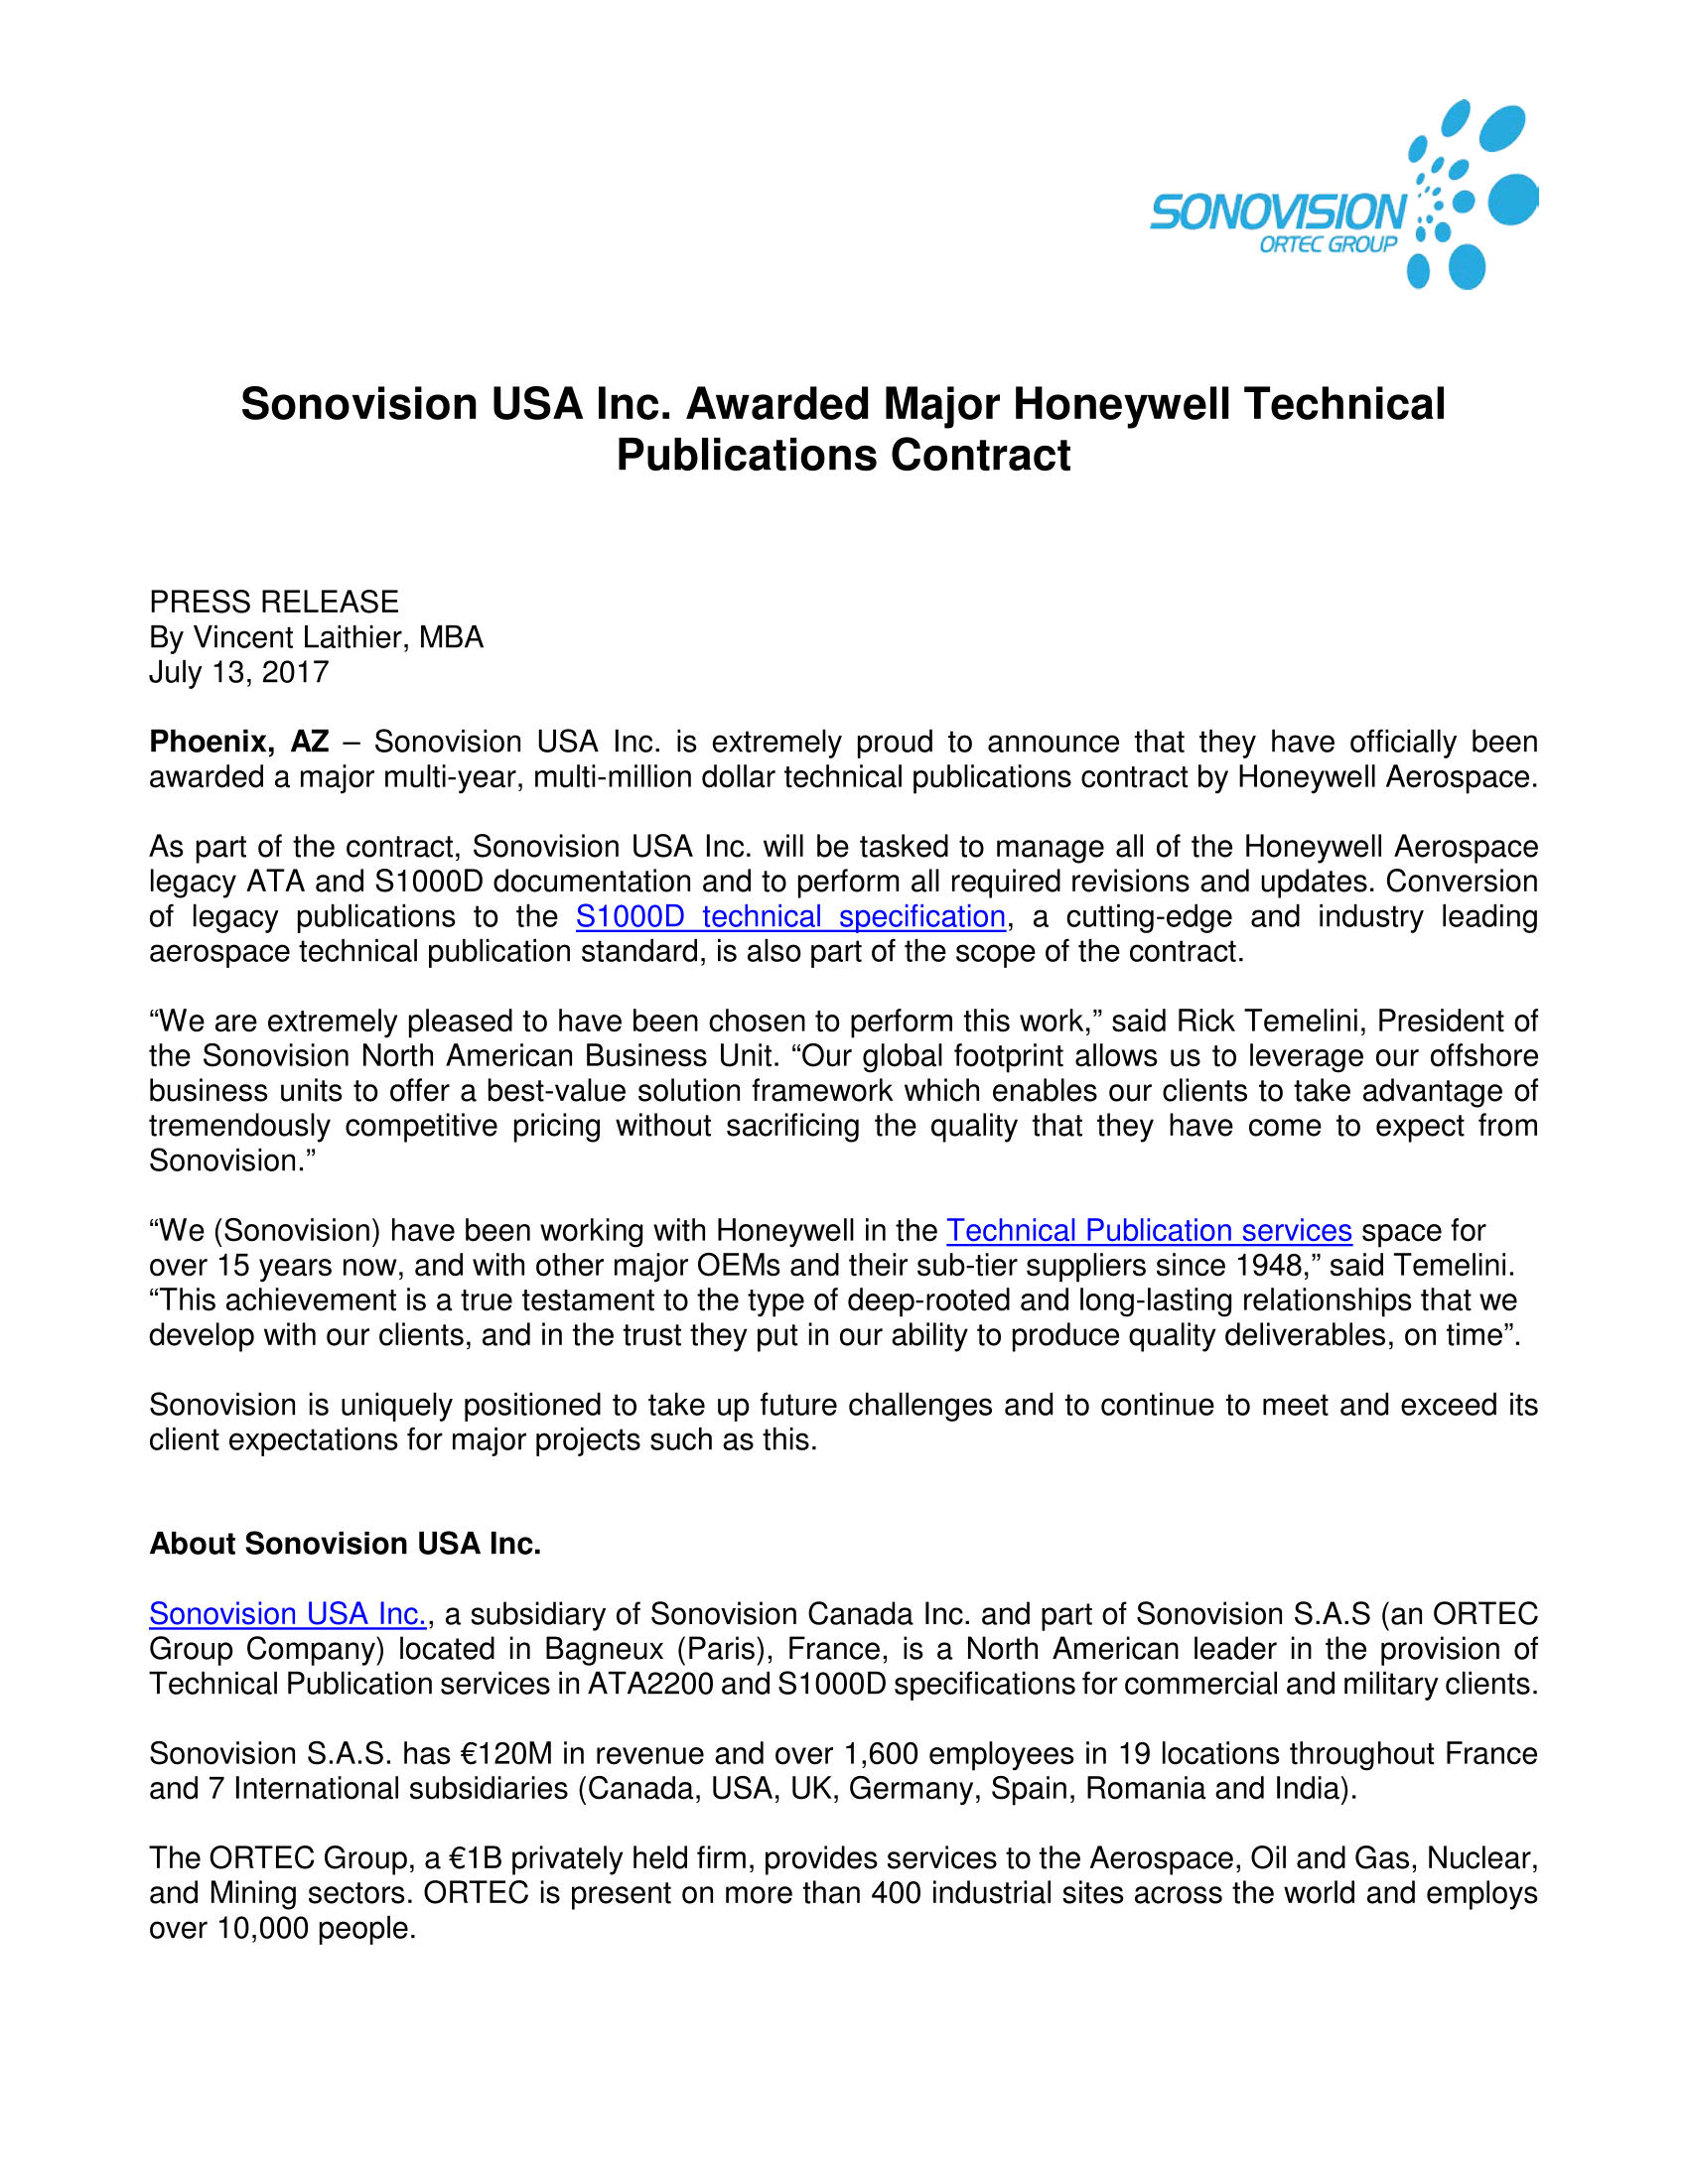 Honeywell contract PR - May 2017 - Final-1